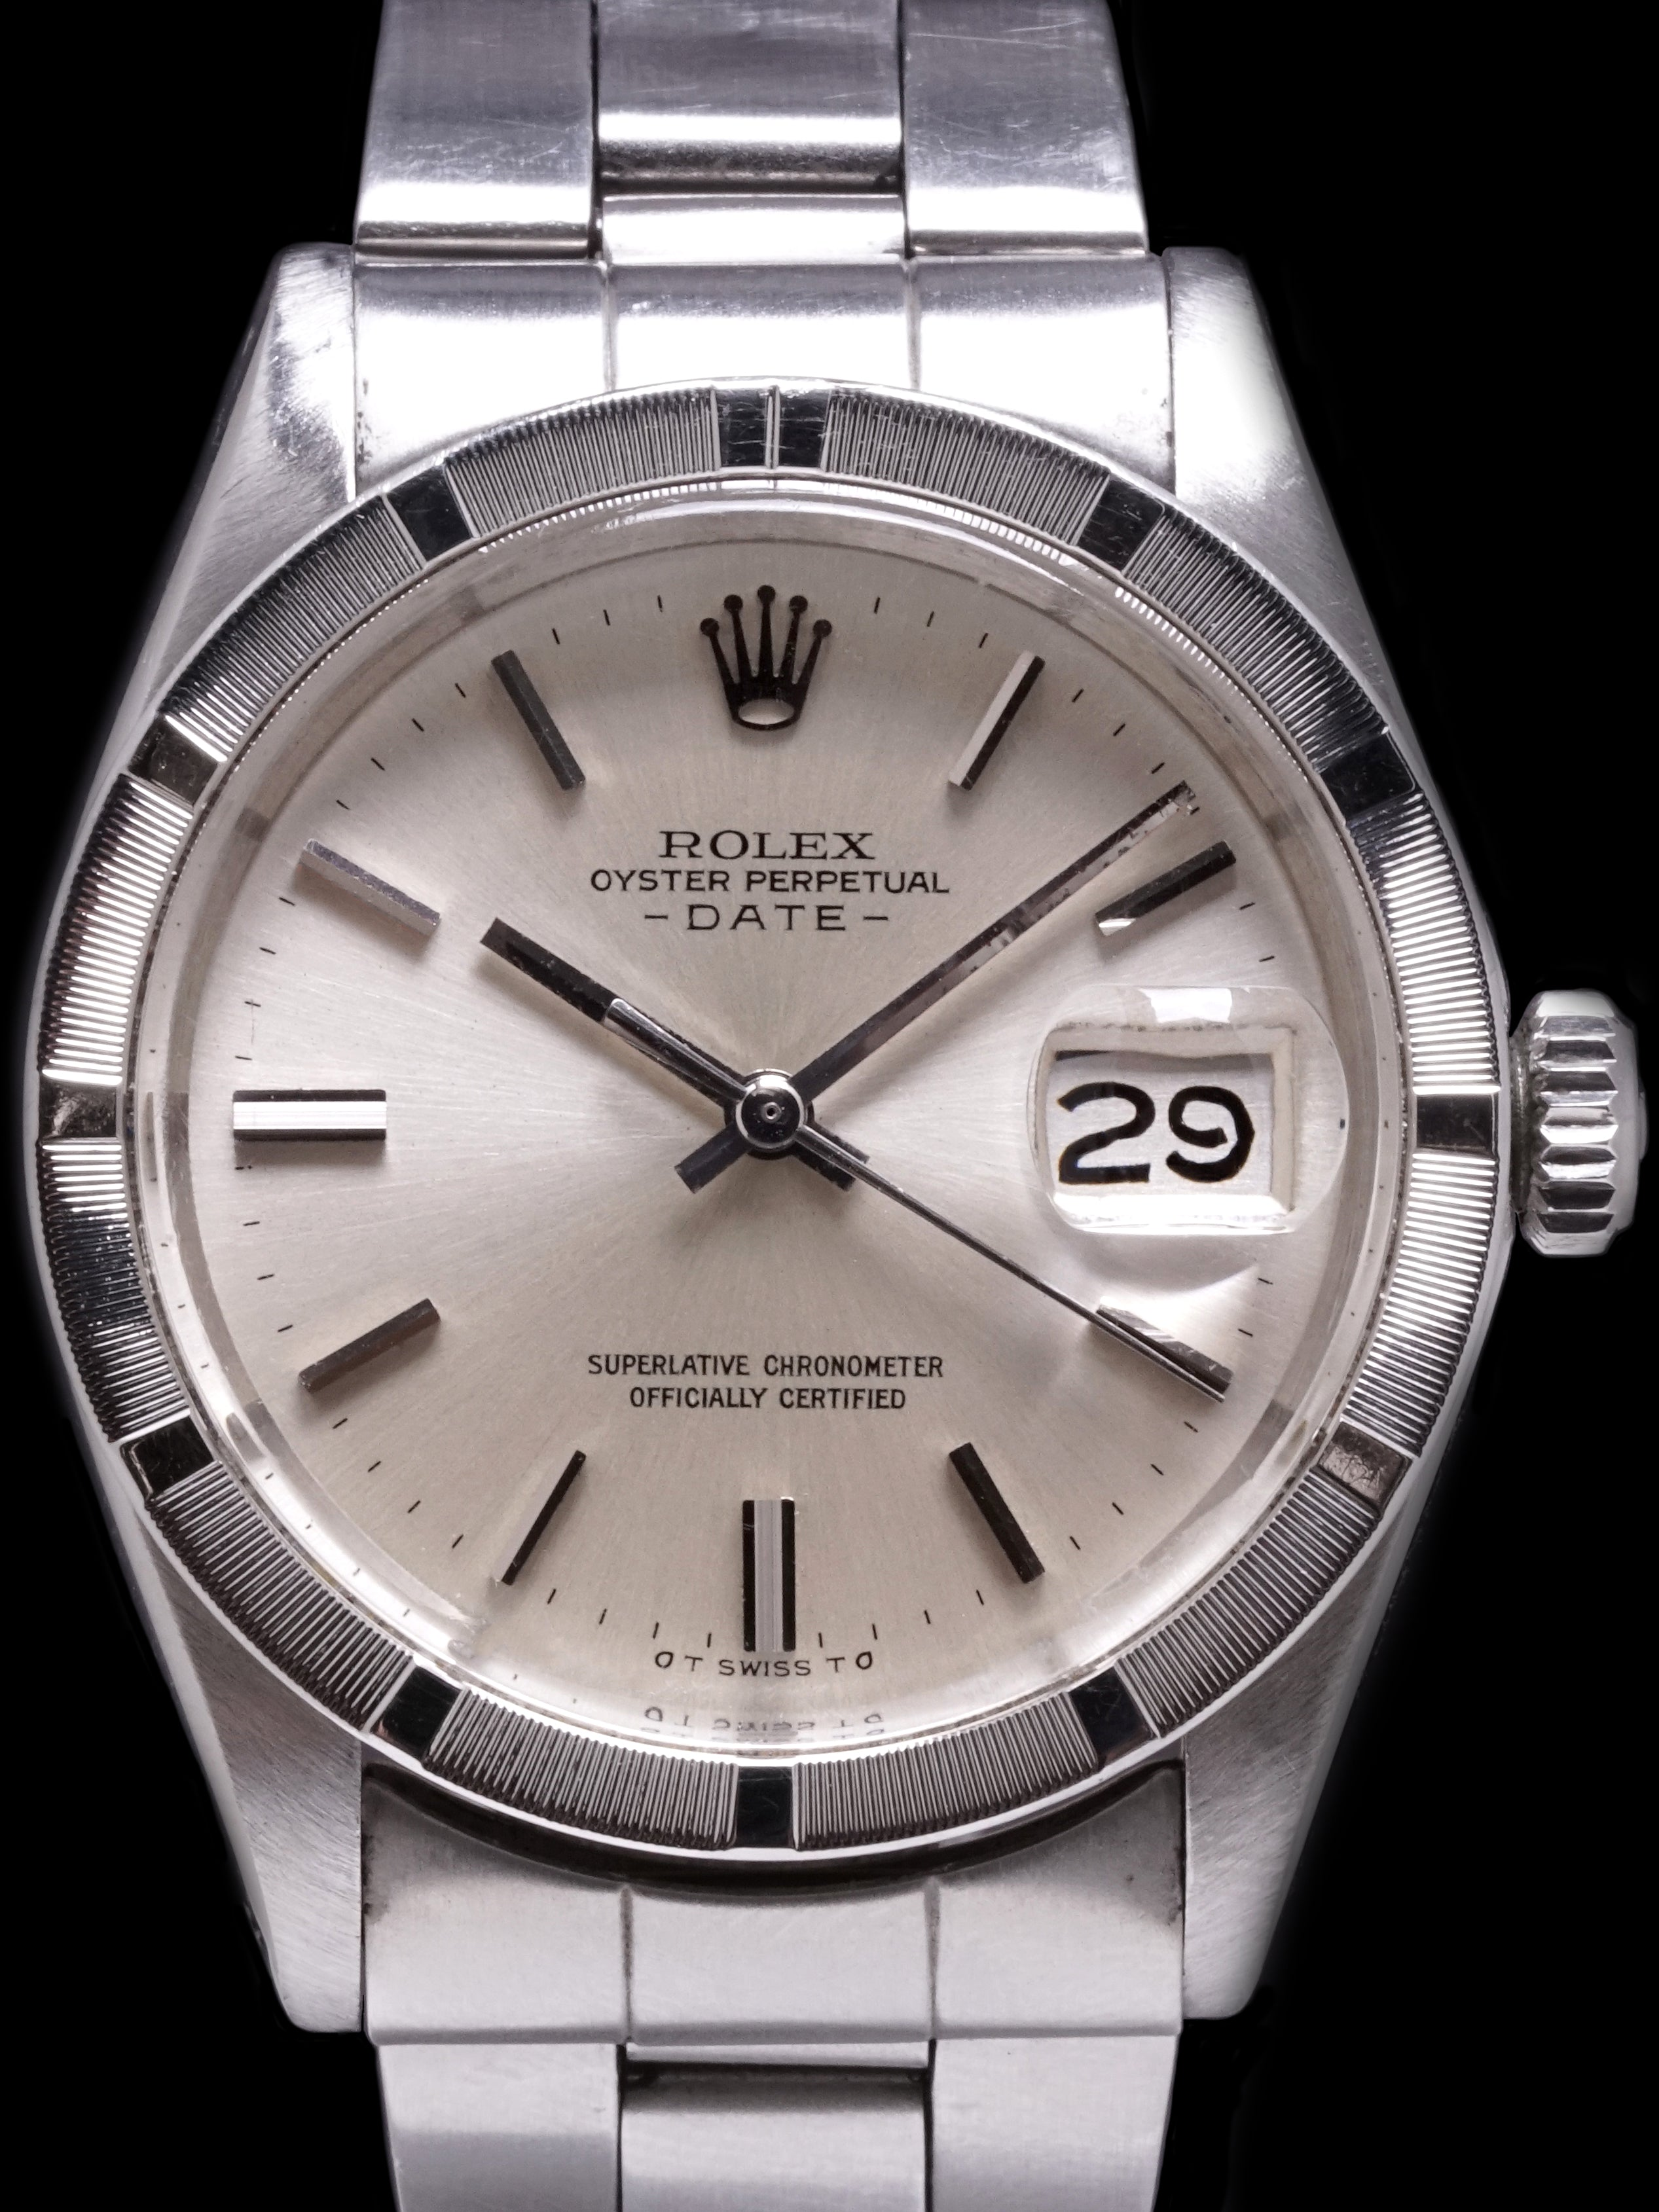 1973 Rolex Oyster-Perpetual Date (Ref. 1501) No-Lume Silver Sigma Dial